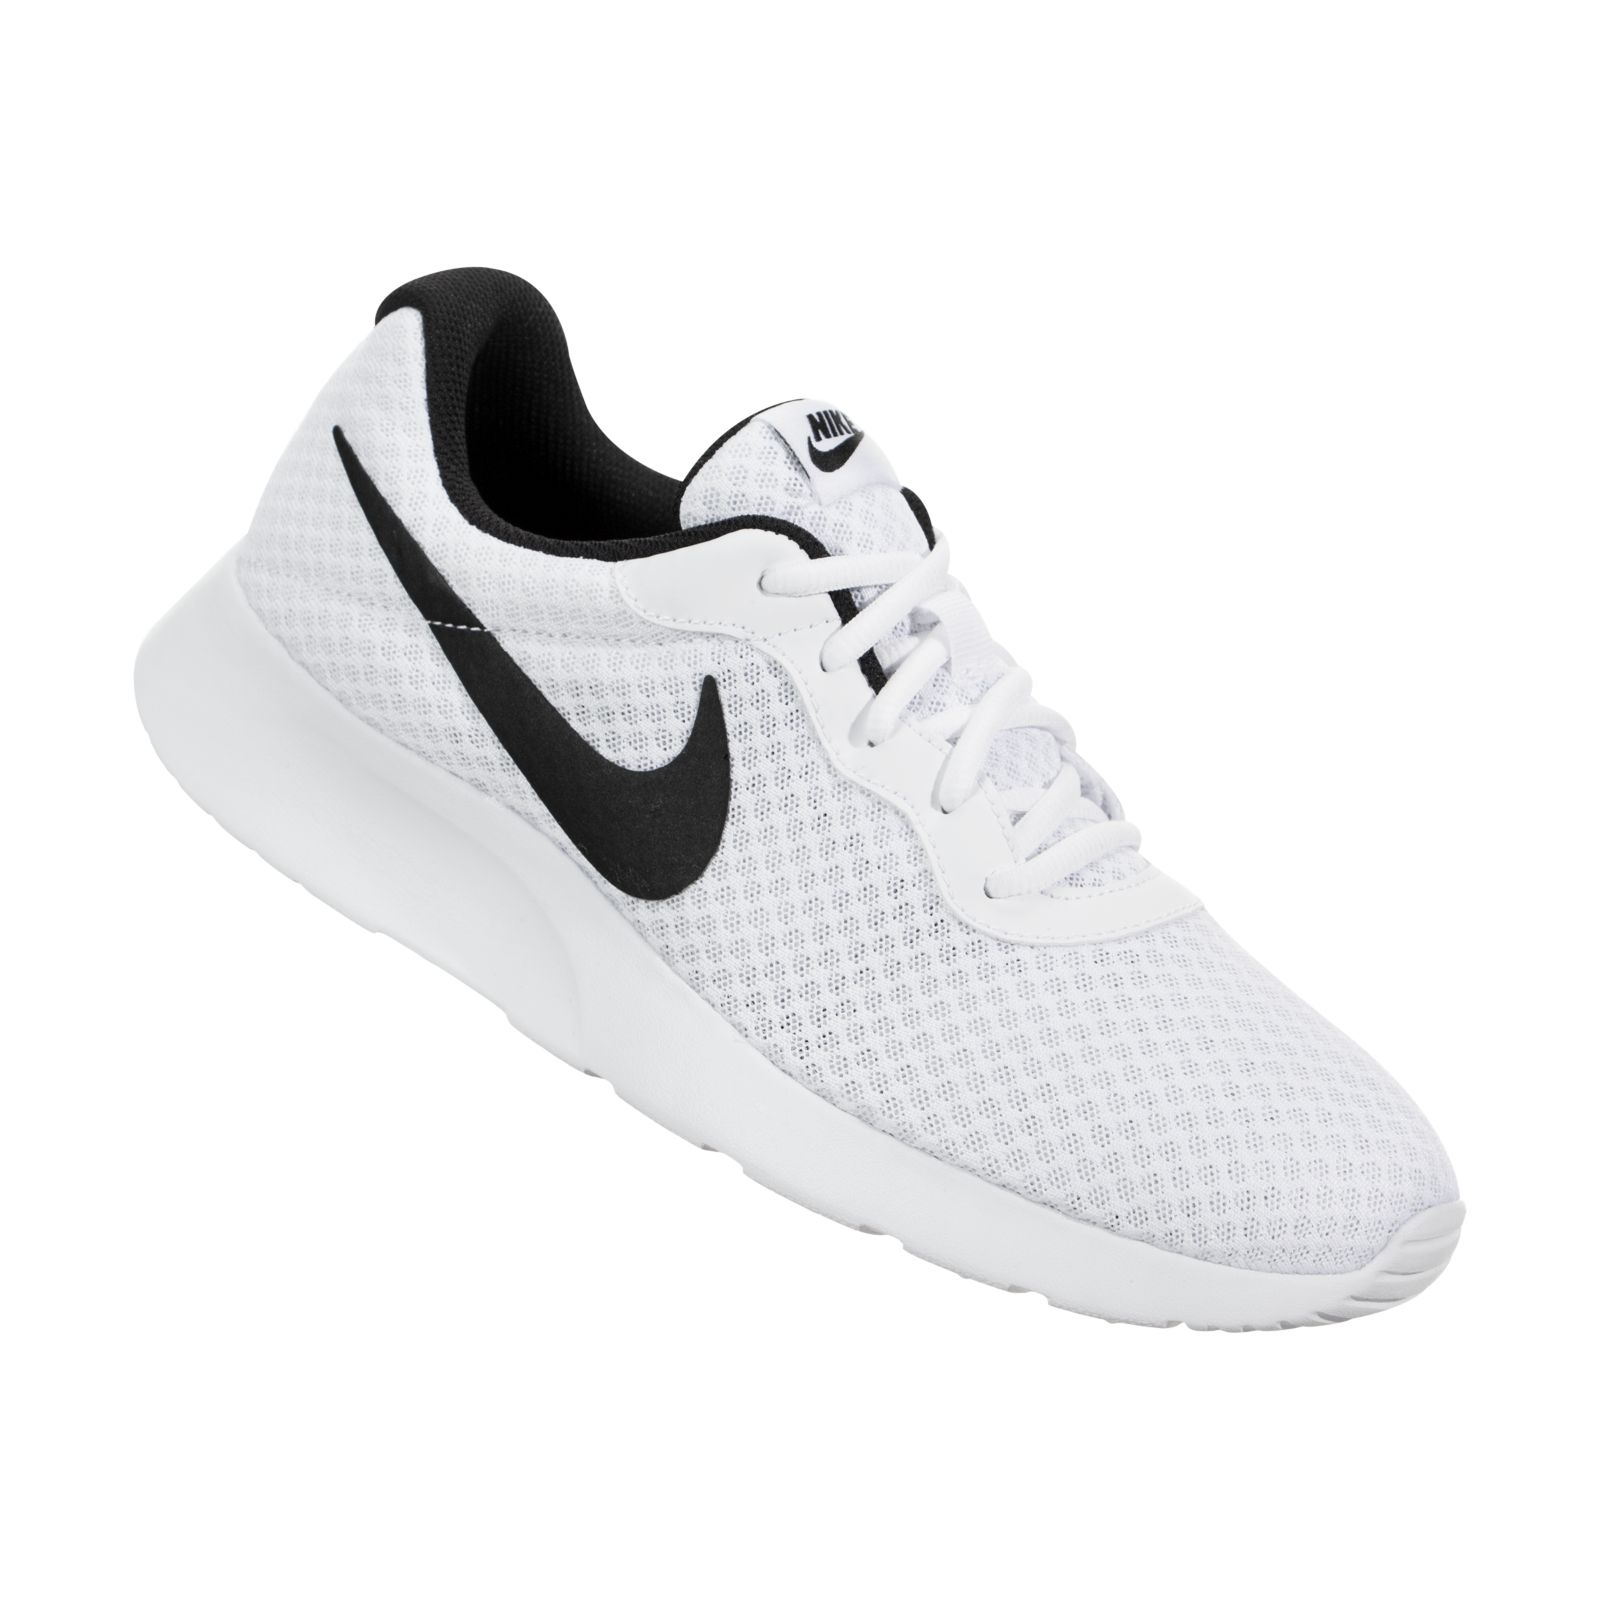 sports shoes 7ce31 181d1 ... Gentlemen Ladies  Nike Women s Women s Women s Tanjun  New Listing  825c95